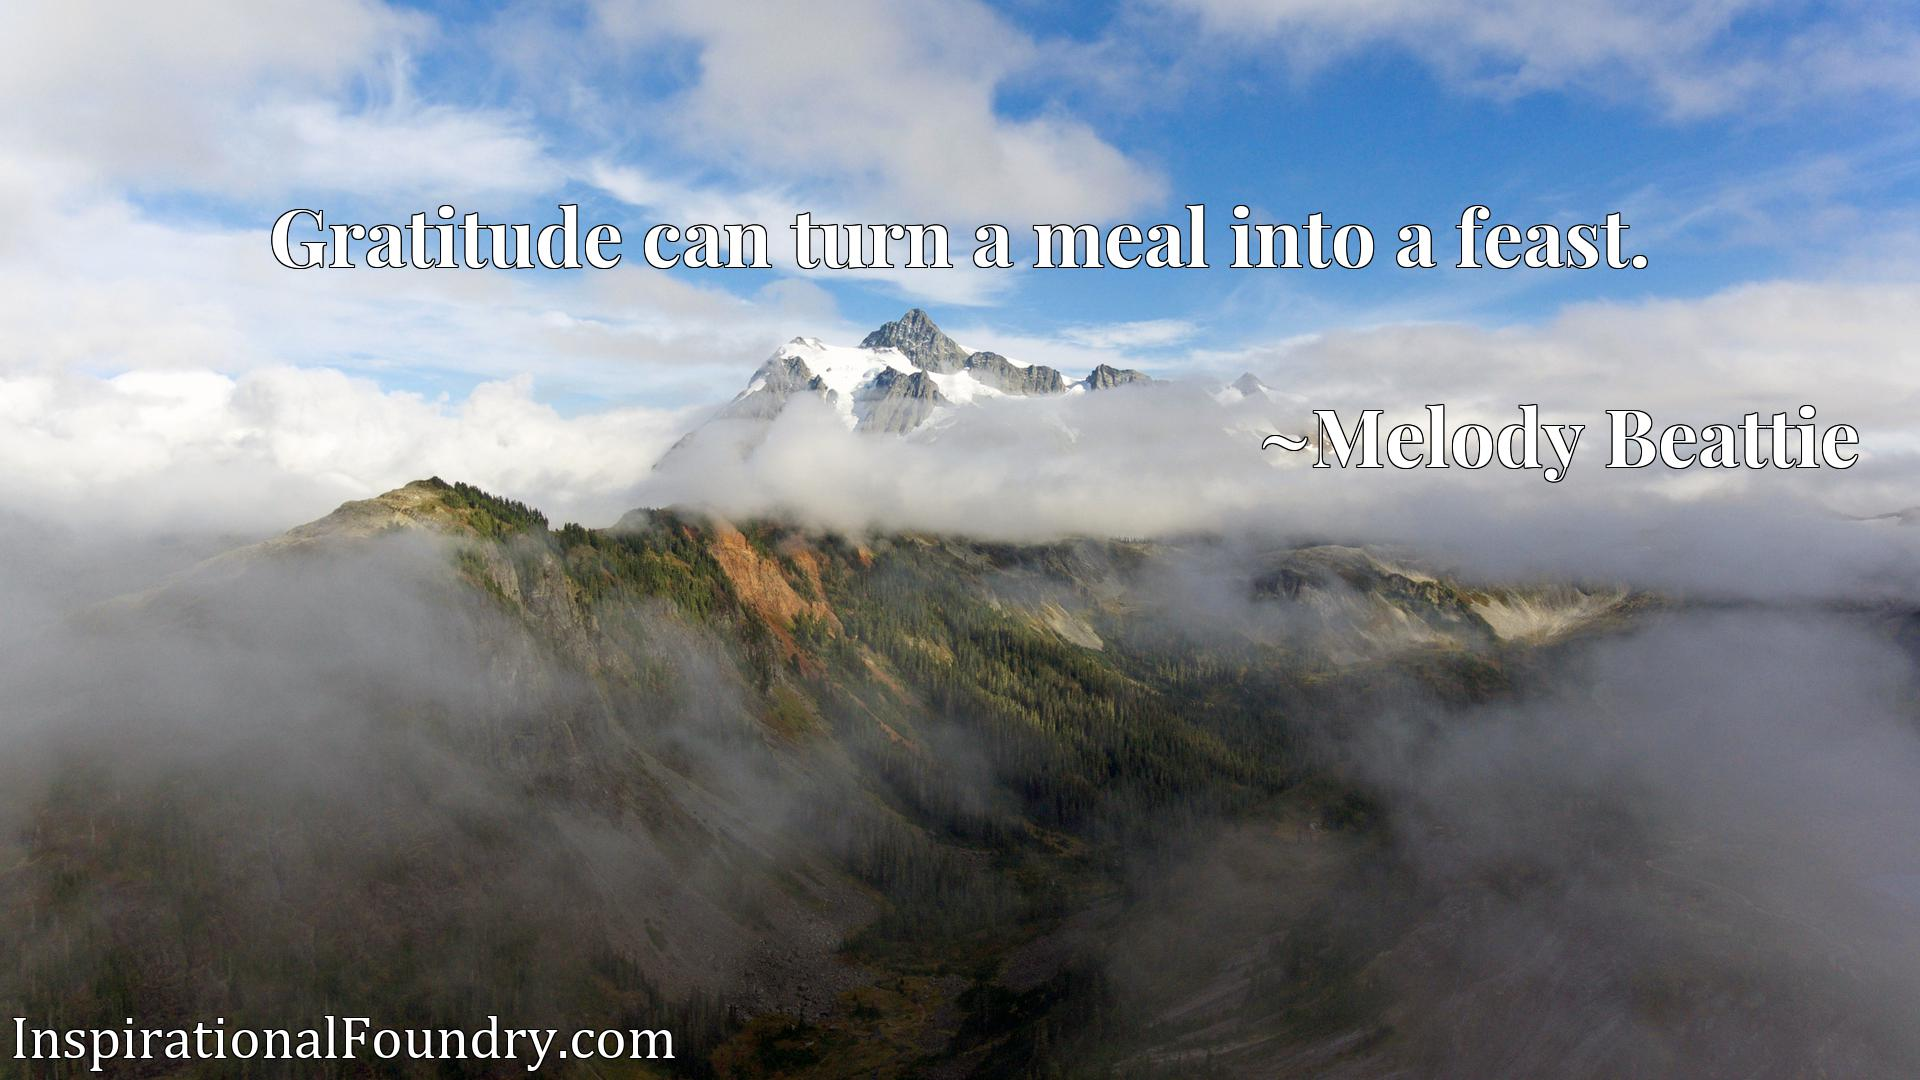 Gratitude can turn a meal into a feast.